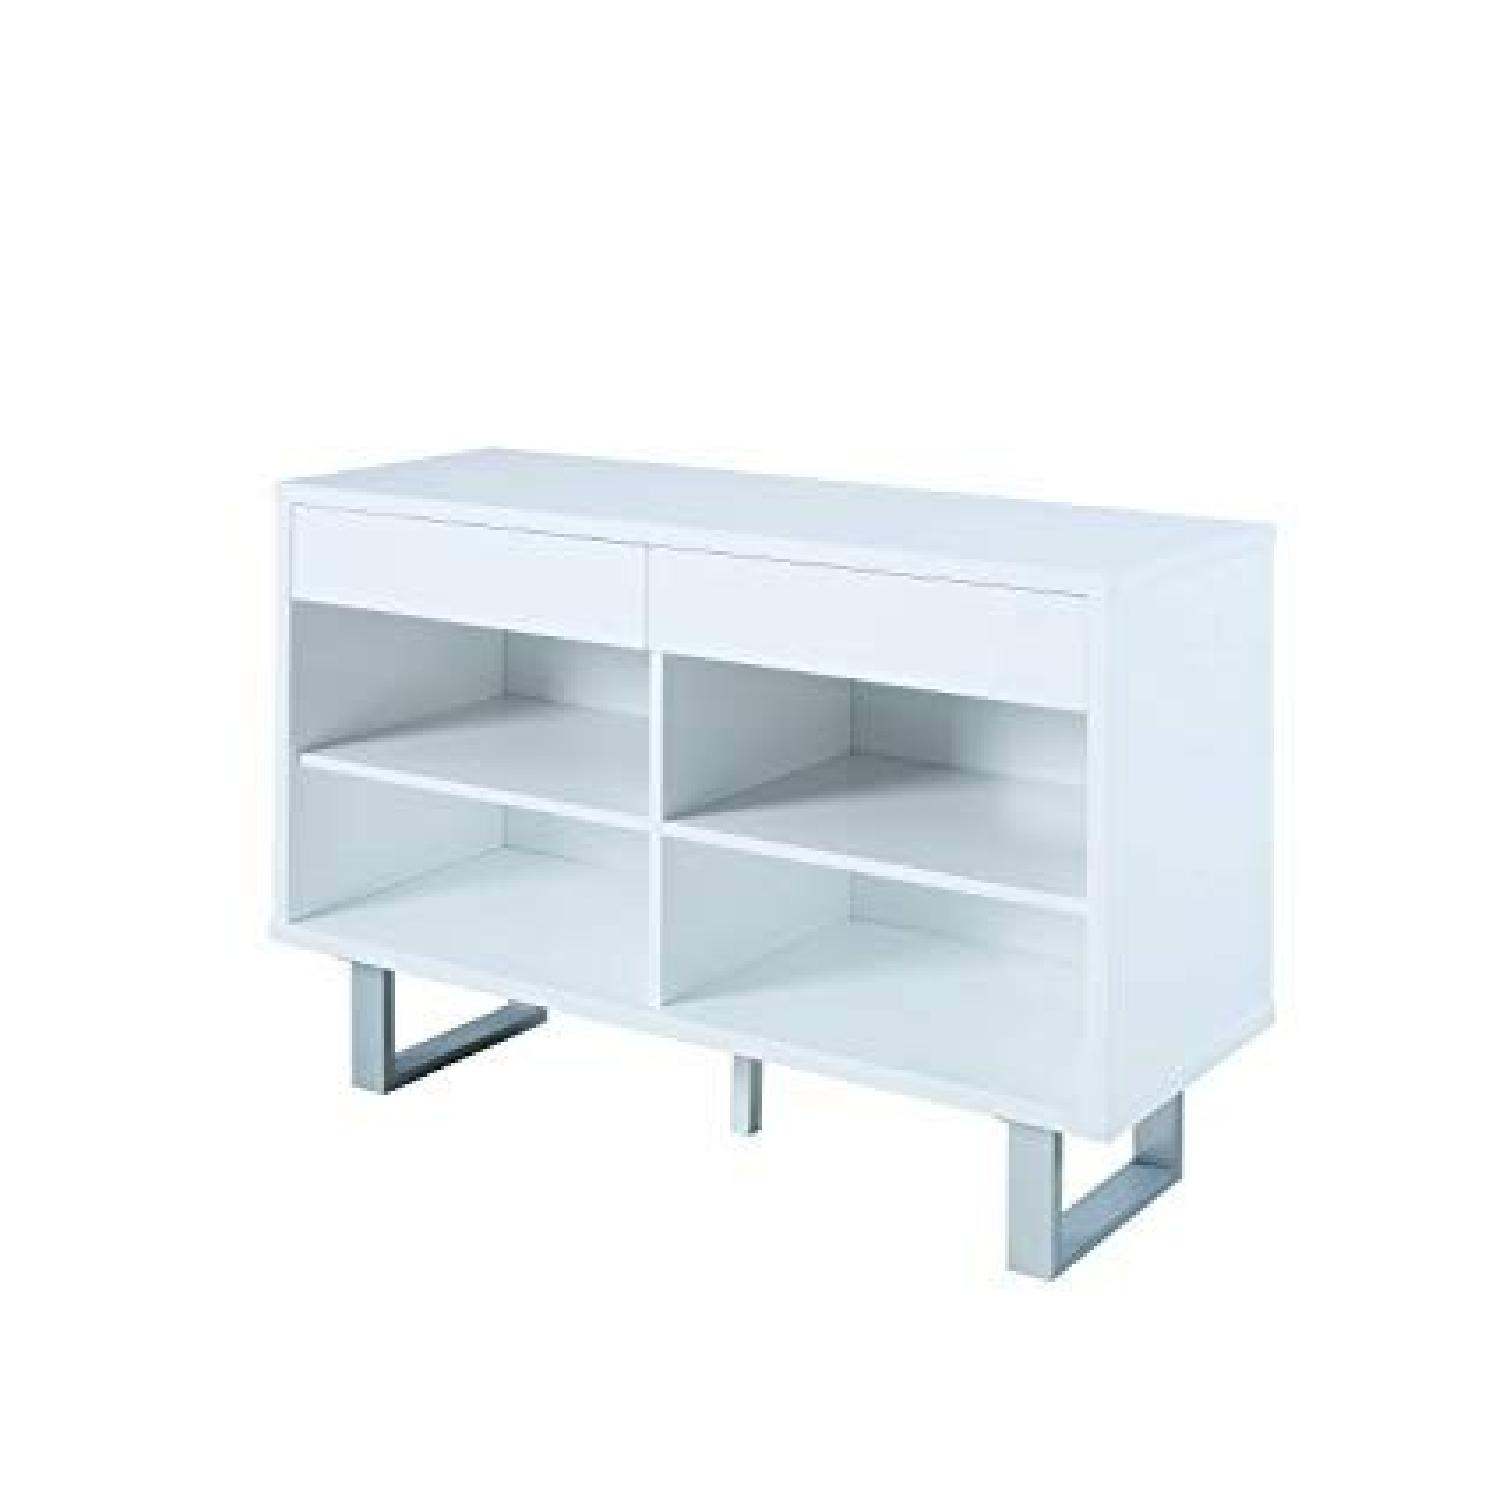 Glossy White Sofa Table w/ 2 Side Drawers - image-0